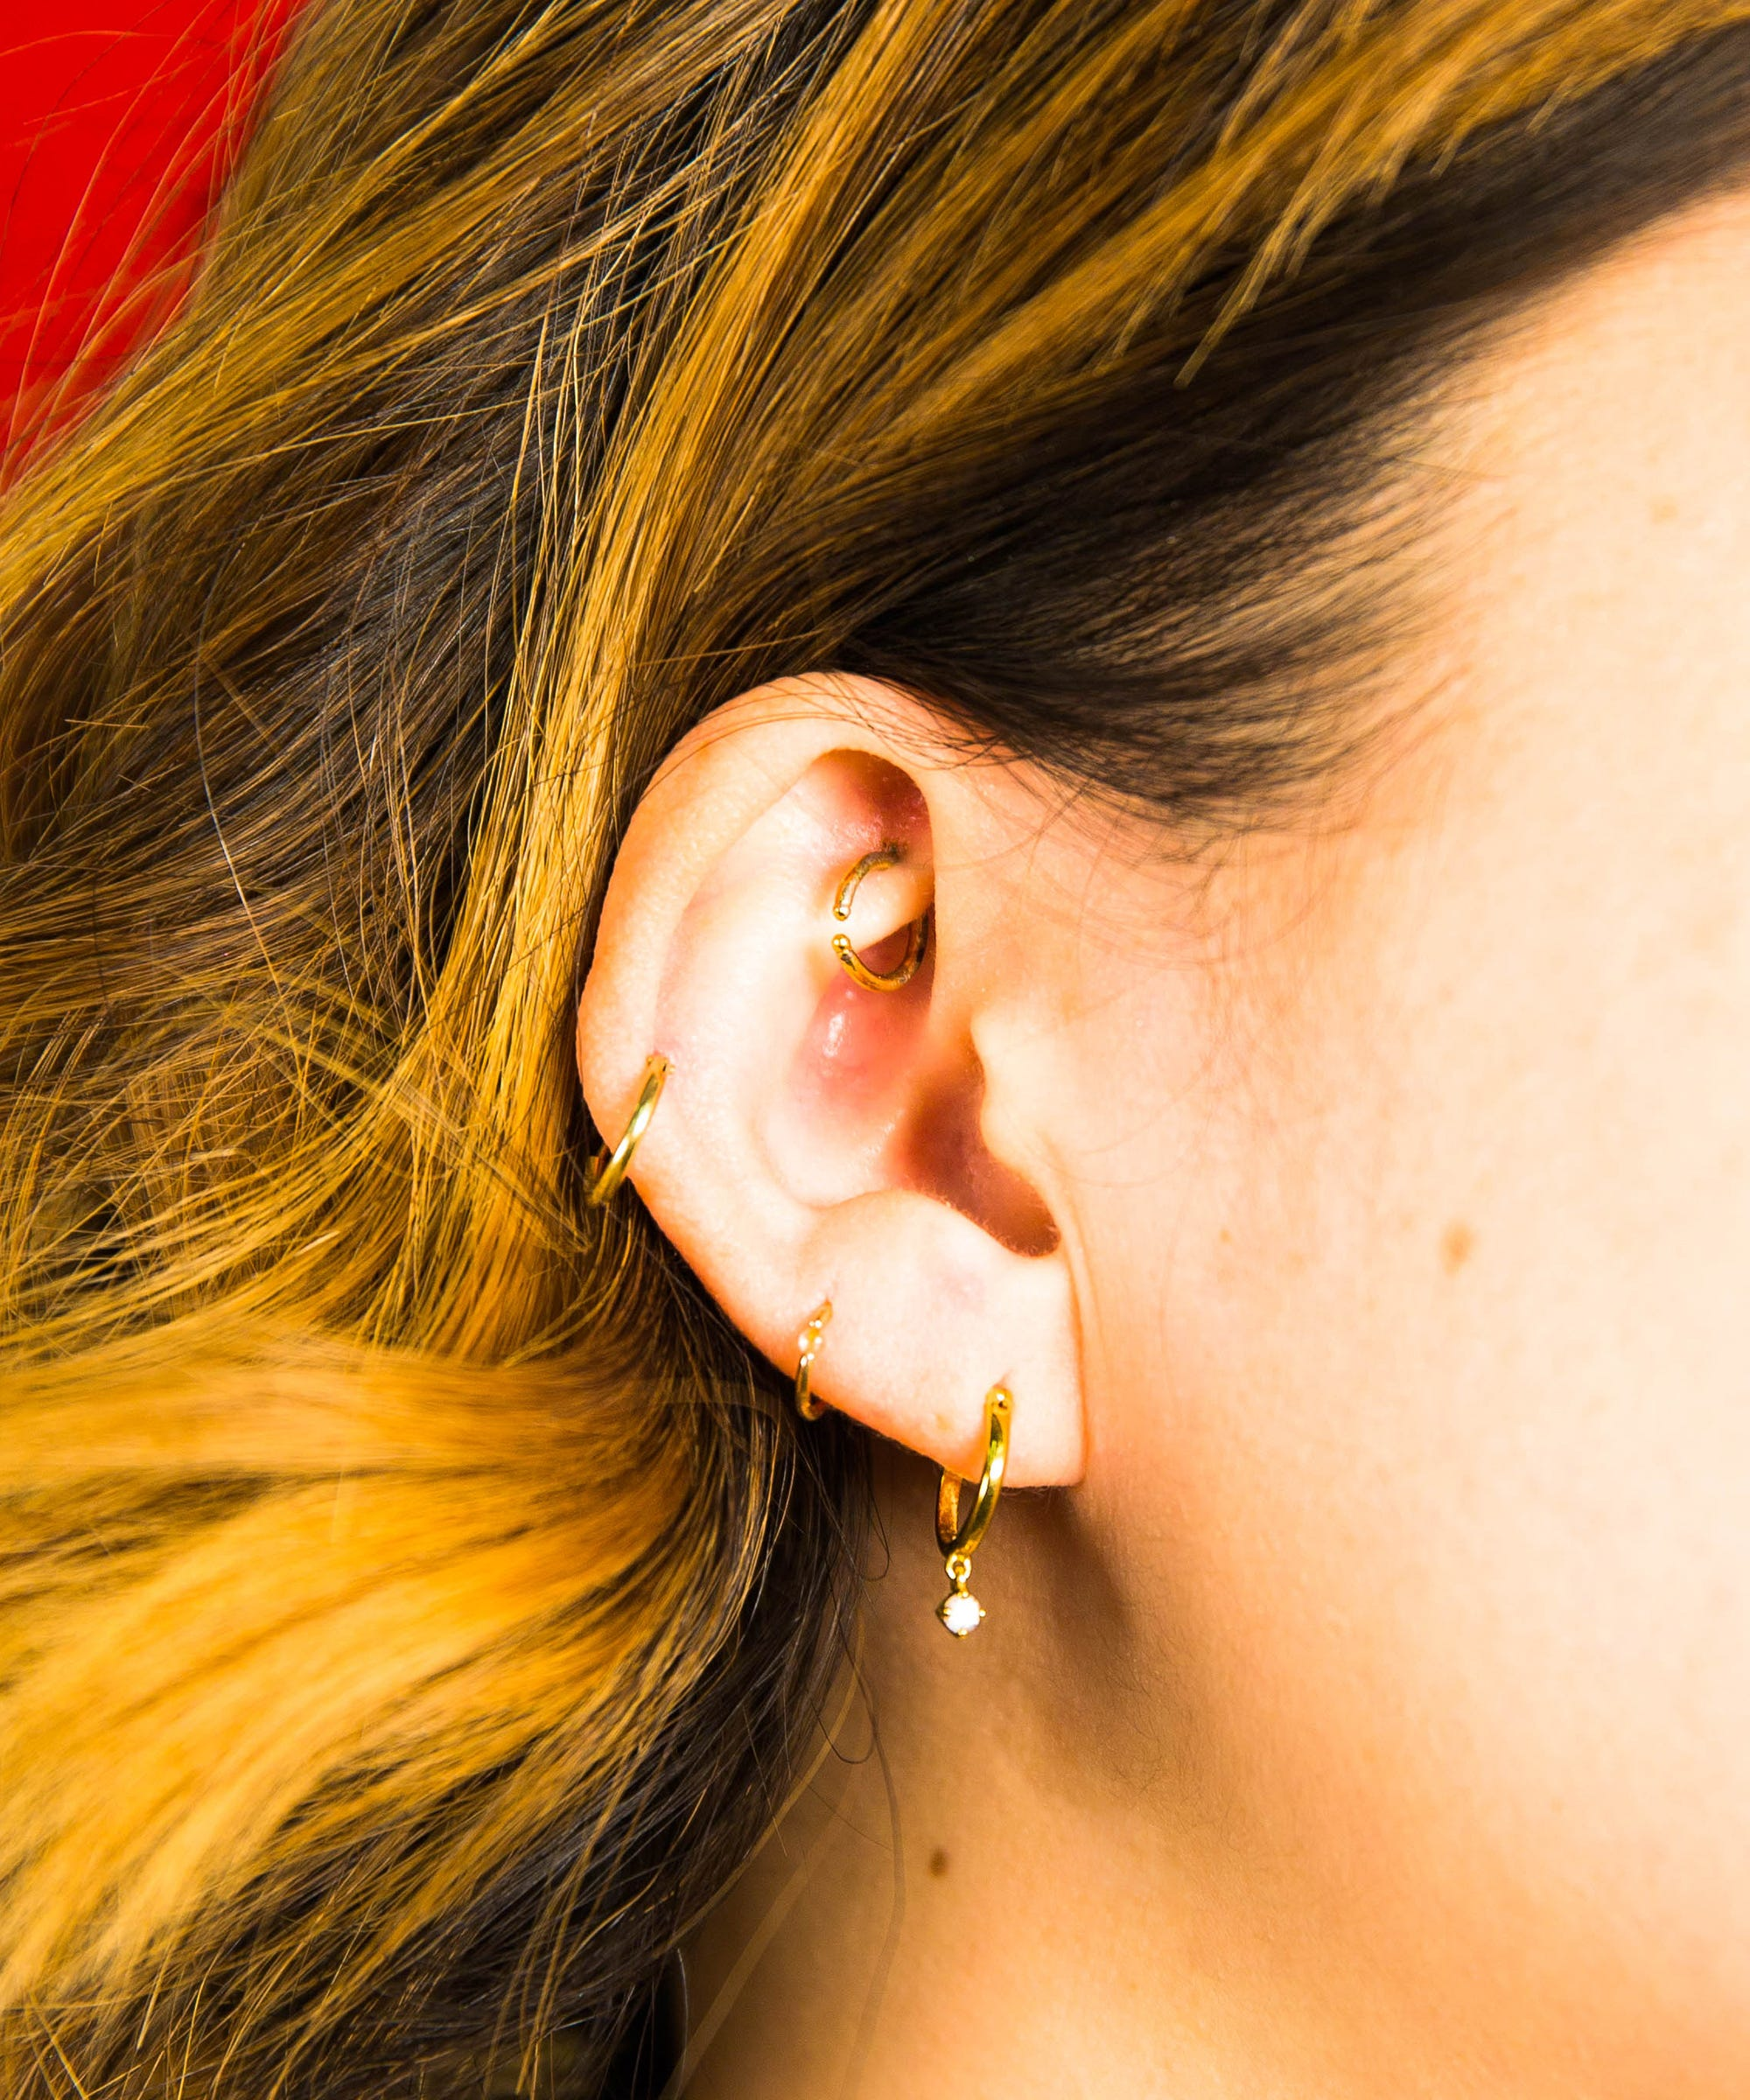 Constellation Ear Piercing Ideas To Inspire Your Looks